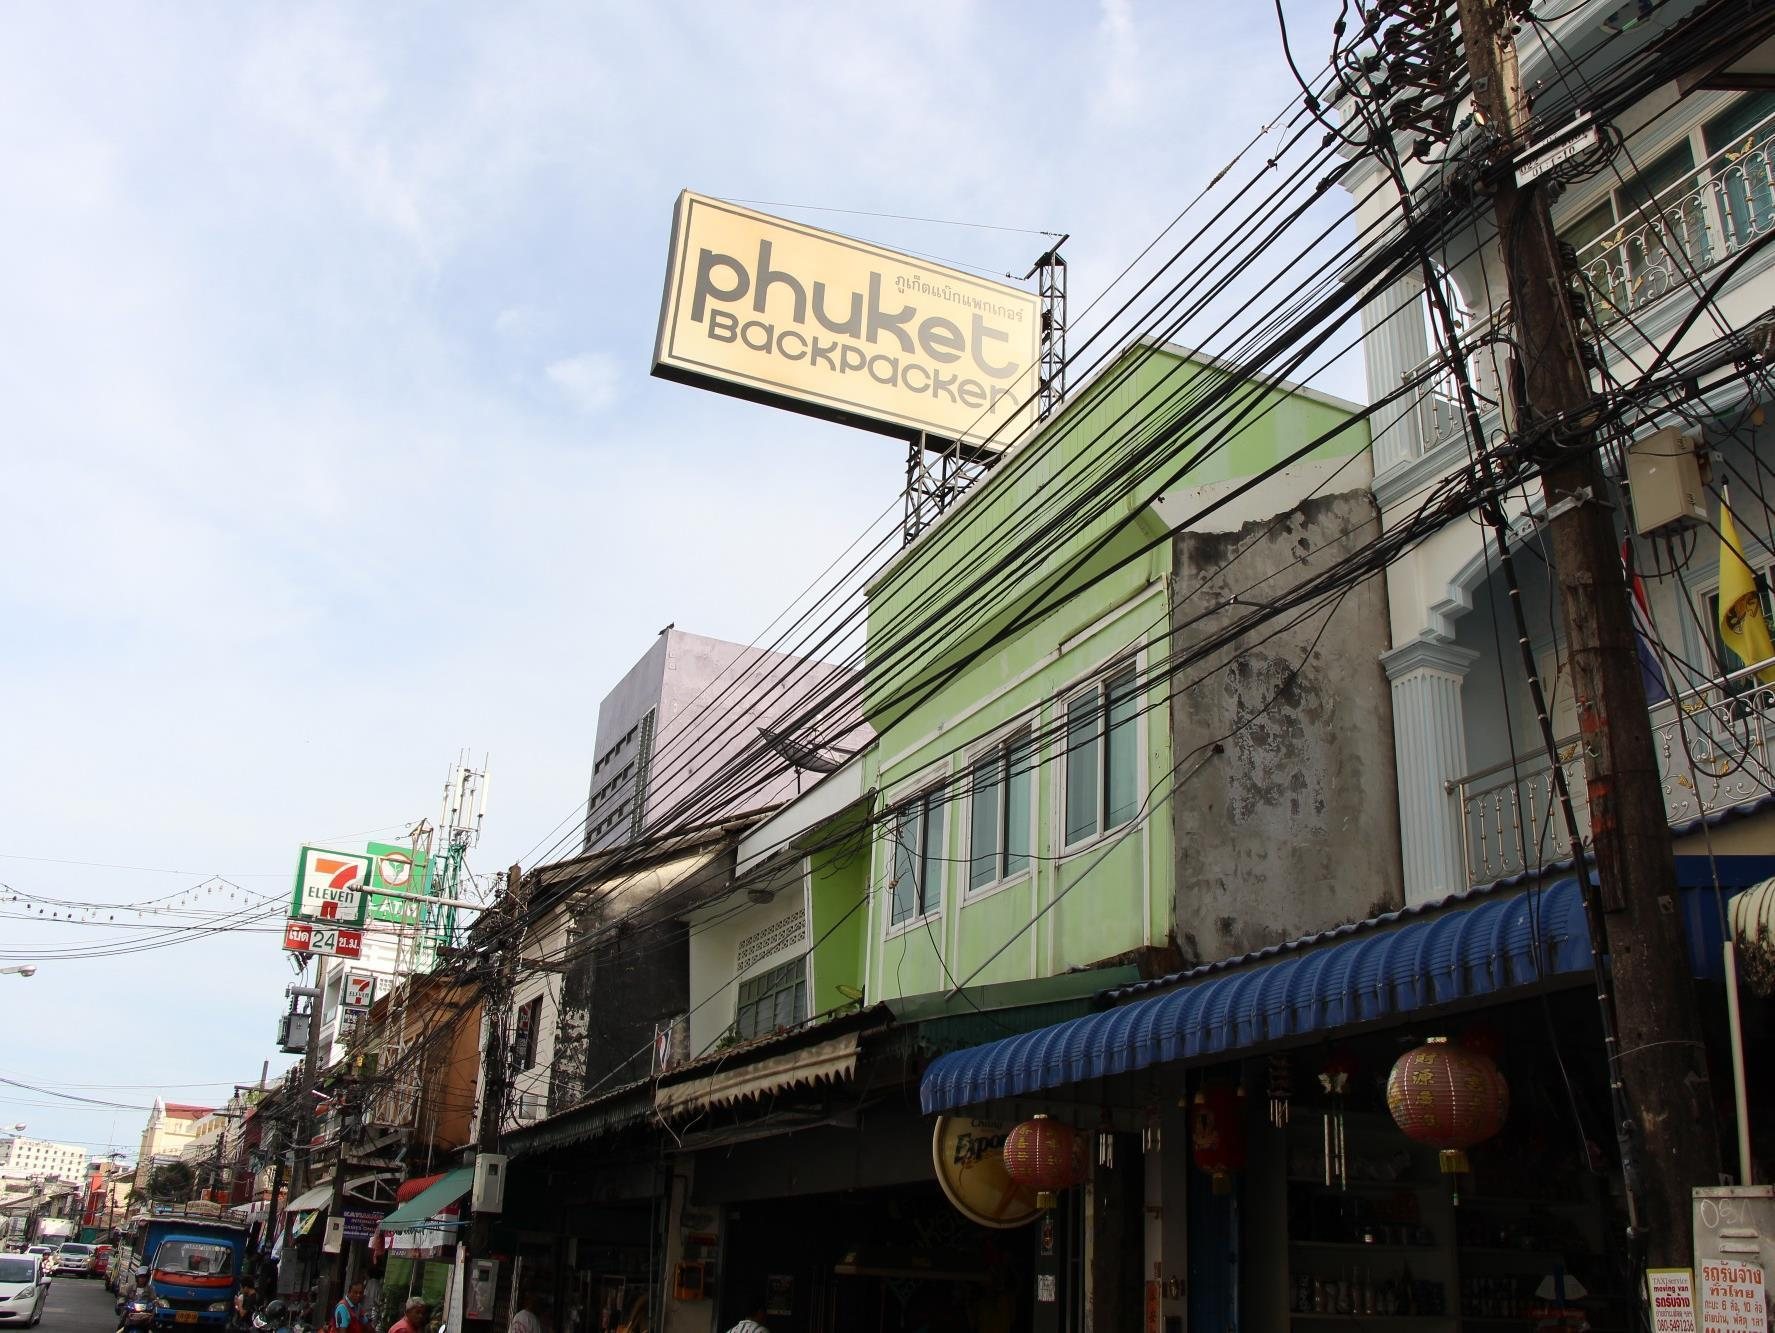 Phuket Backpacker Hostel Phuket - Ulaz